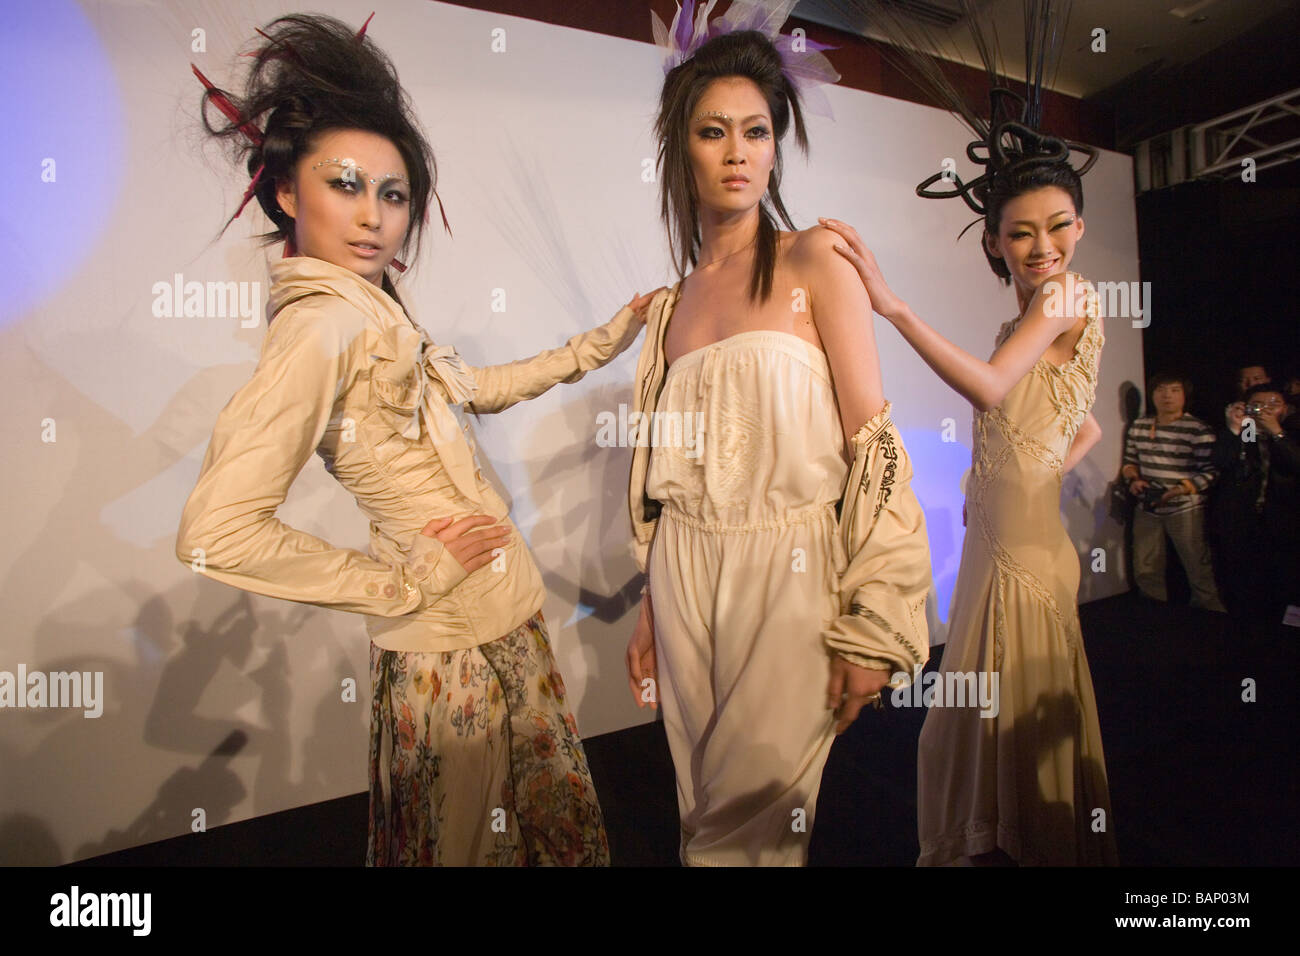 Eric Paris Hair And Fashion Show Beijing University Students Hired Stock Photo Alamy